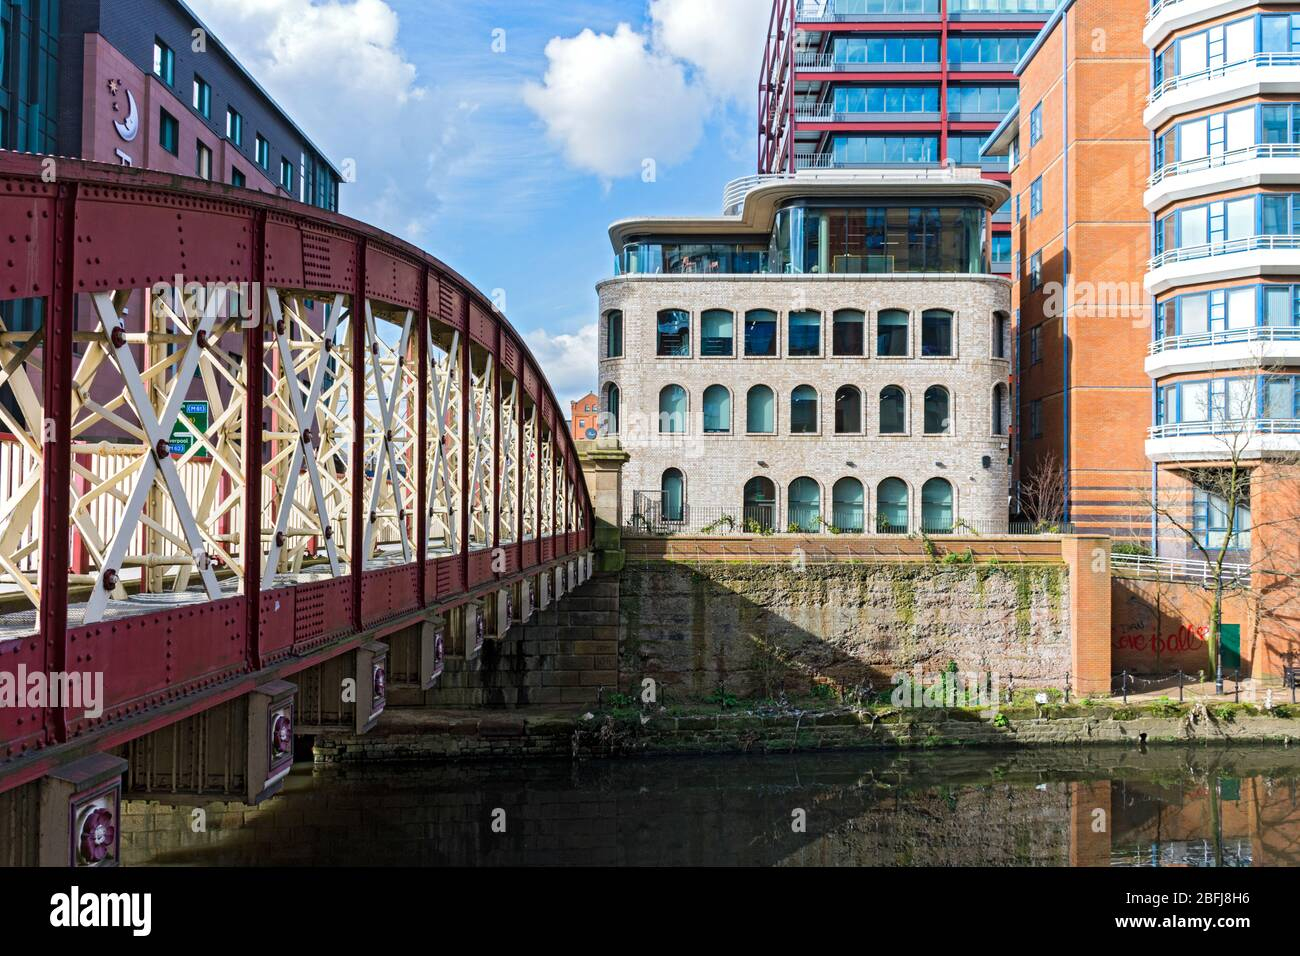 The Riverside House building and the Bridge Street bridge over the river Irwell, New Bailey, Salford, Manchester, UK Stock Photo